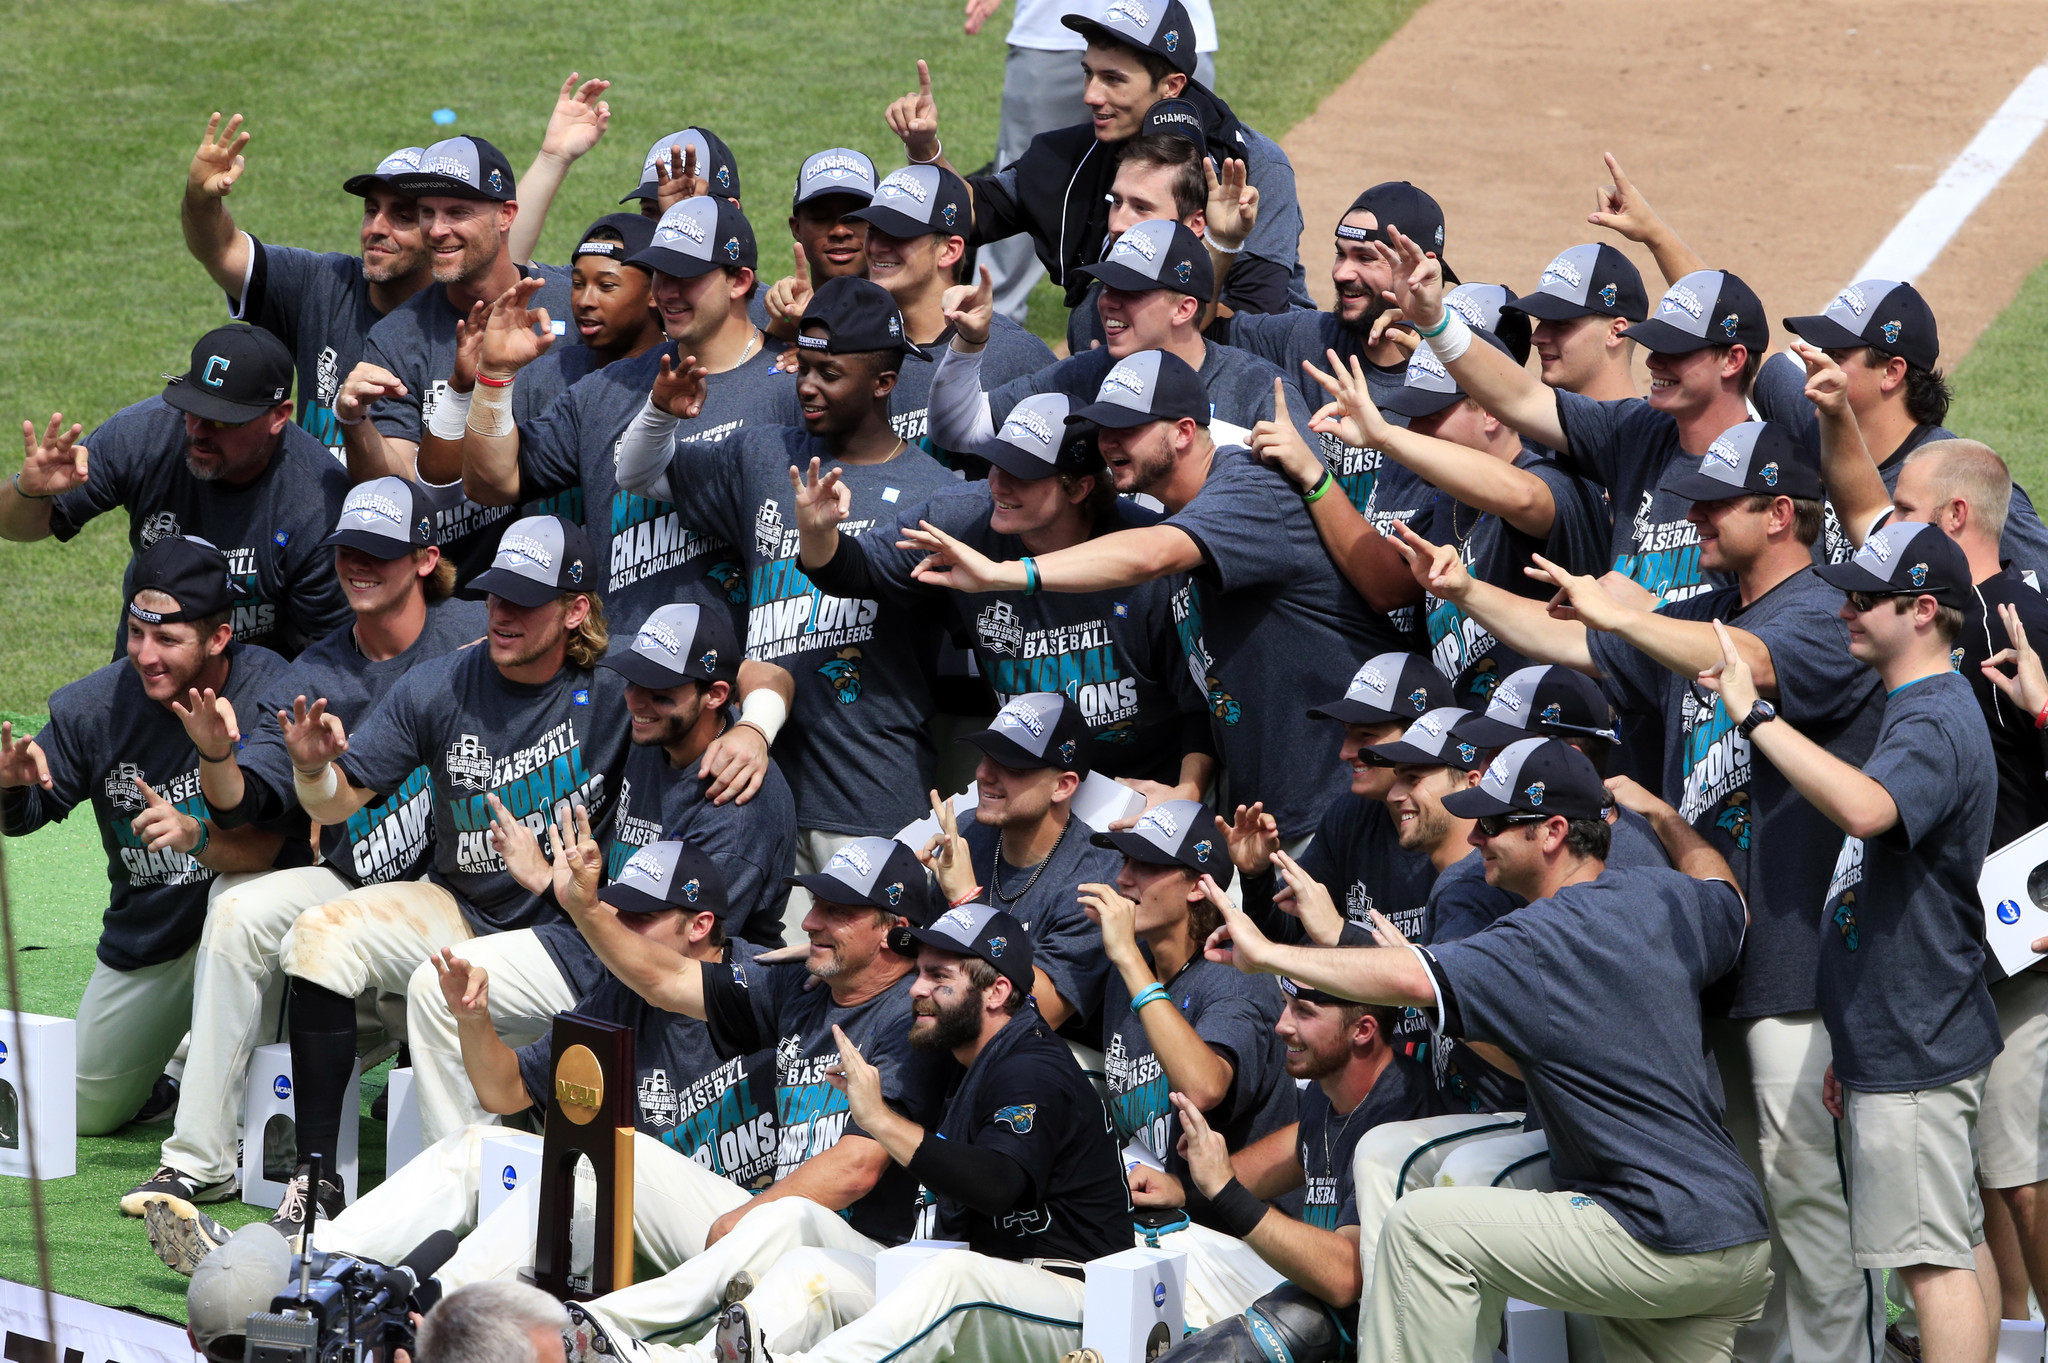 Ct-baseball-college-world-series-final-spt-20160630